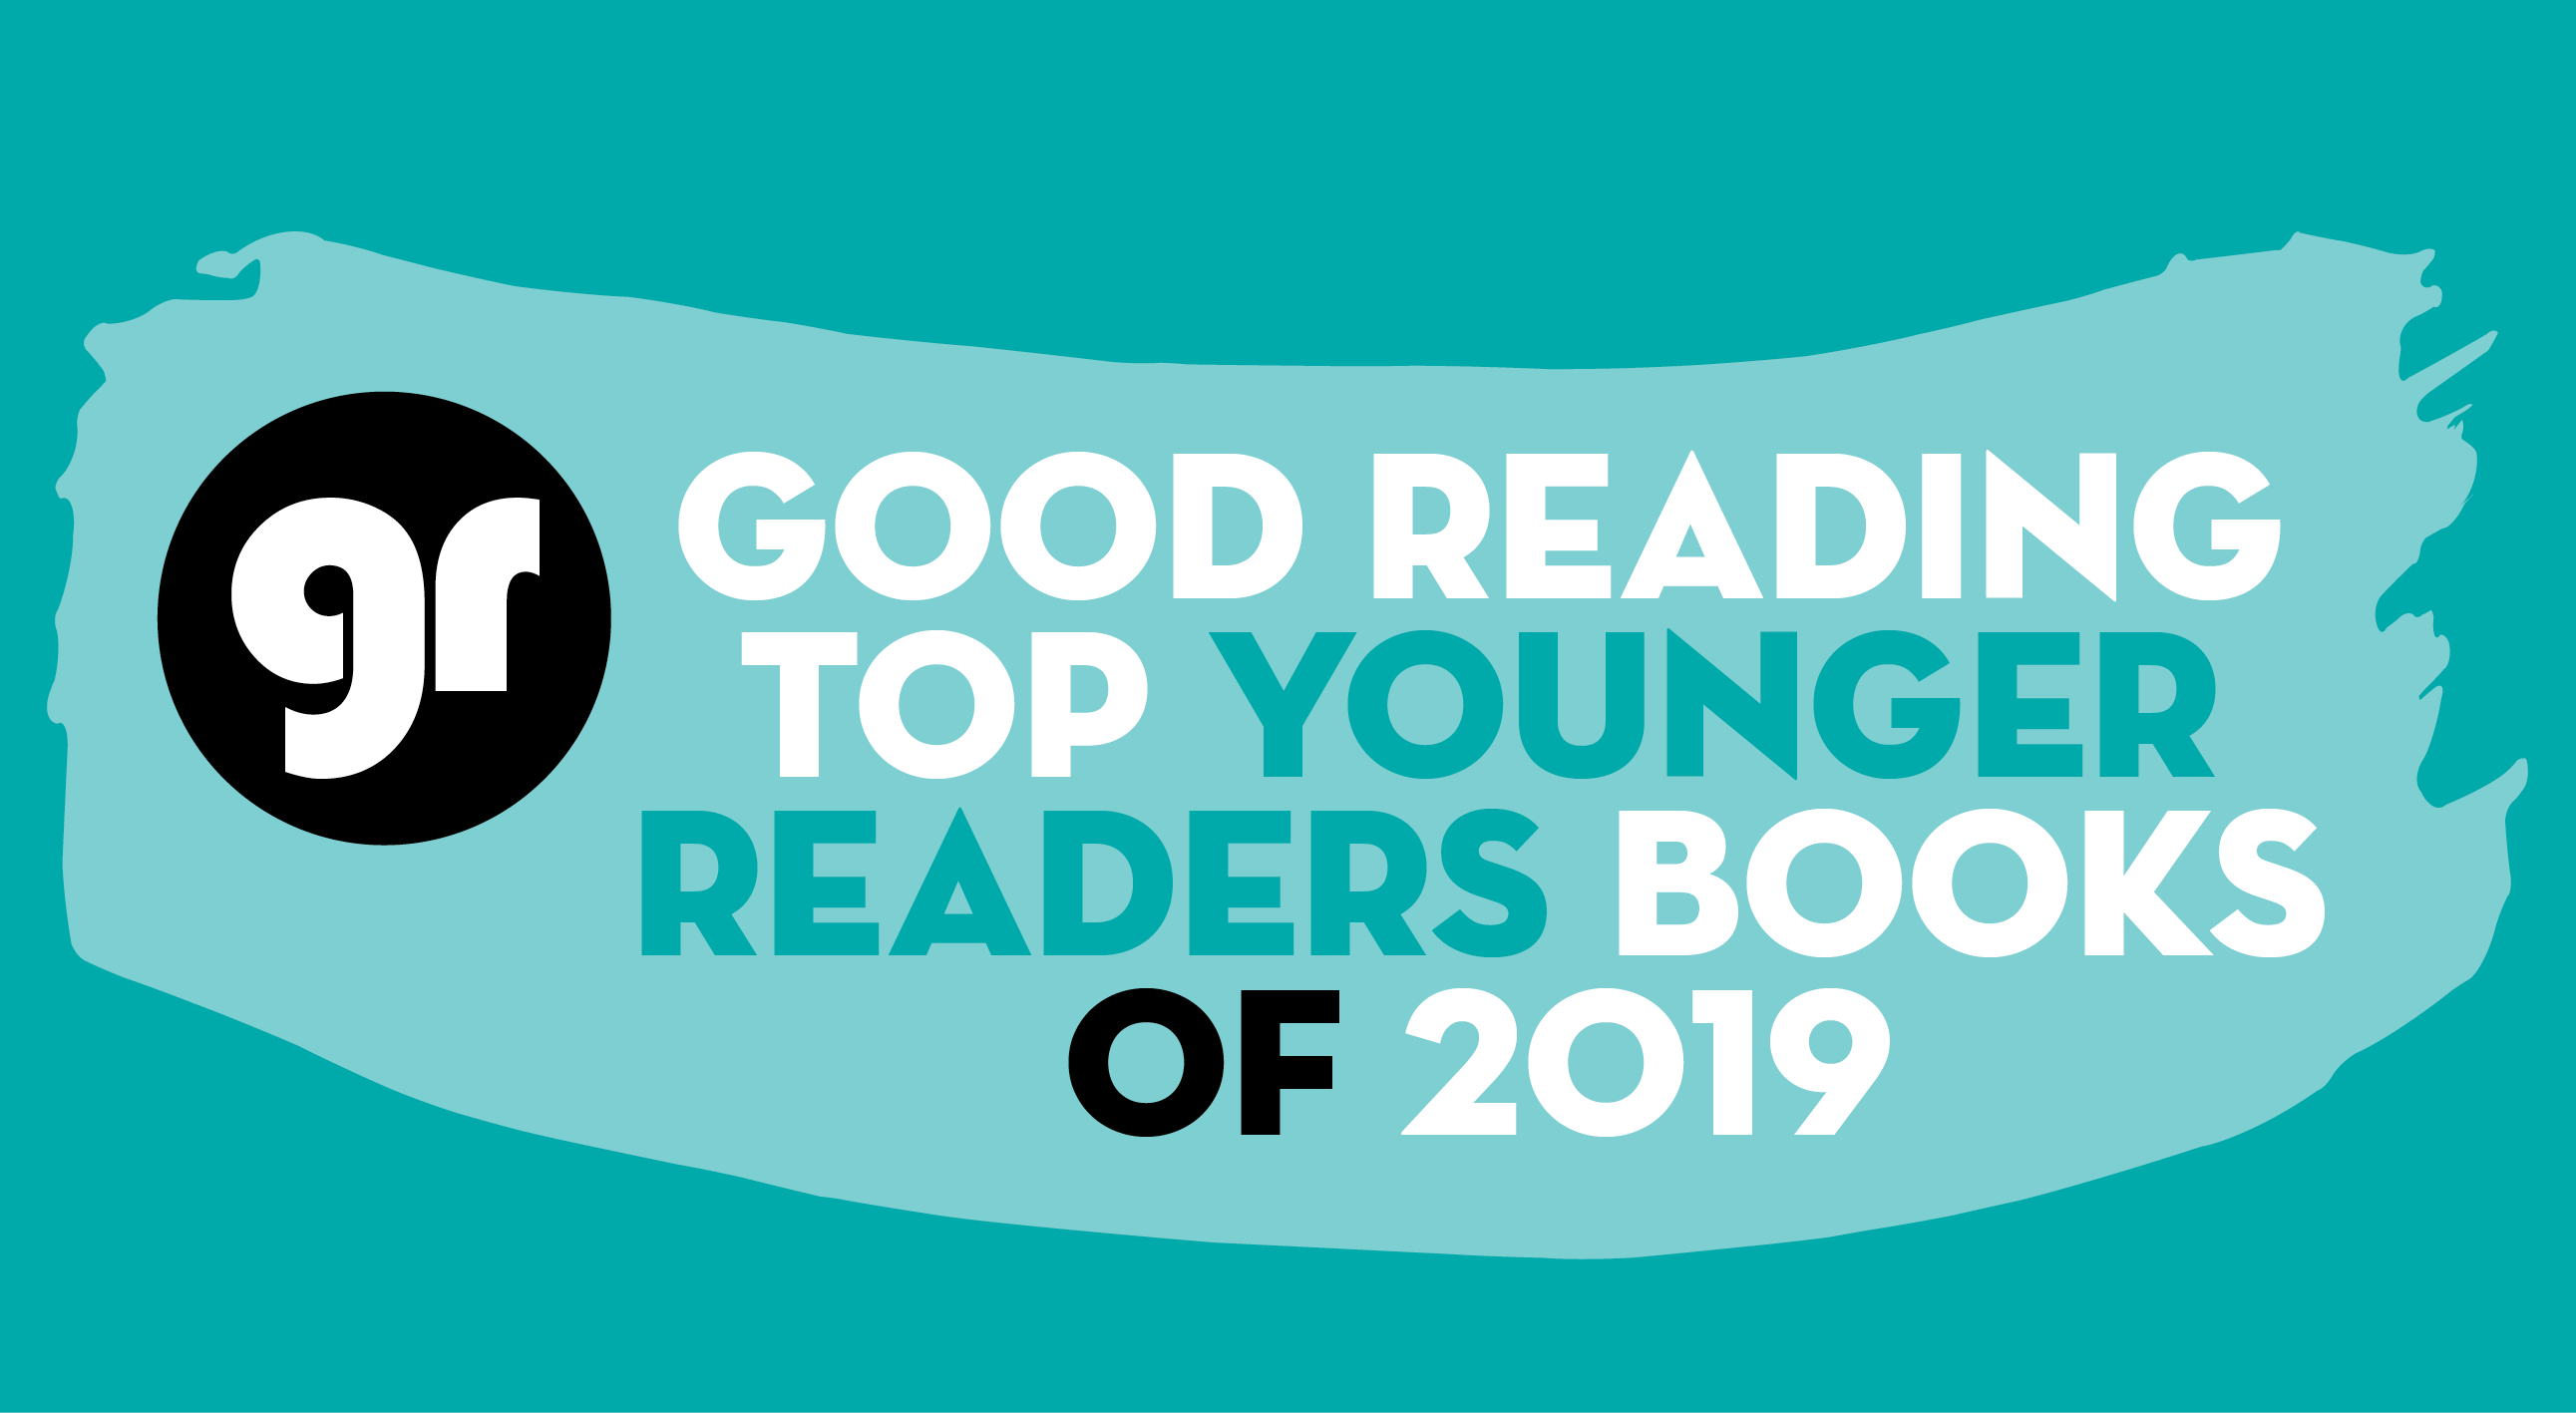 TOP BOOKS YOUNGER readers 2019 Good Reading